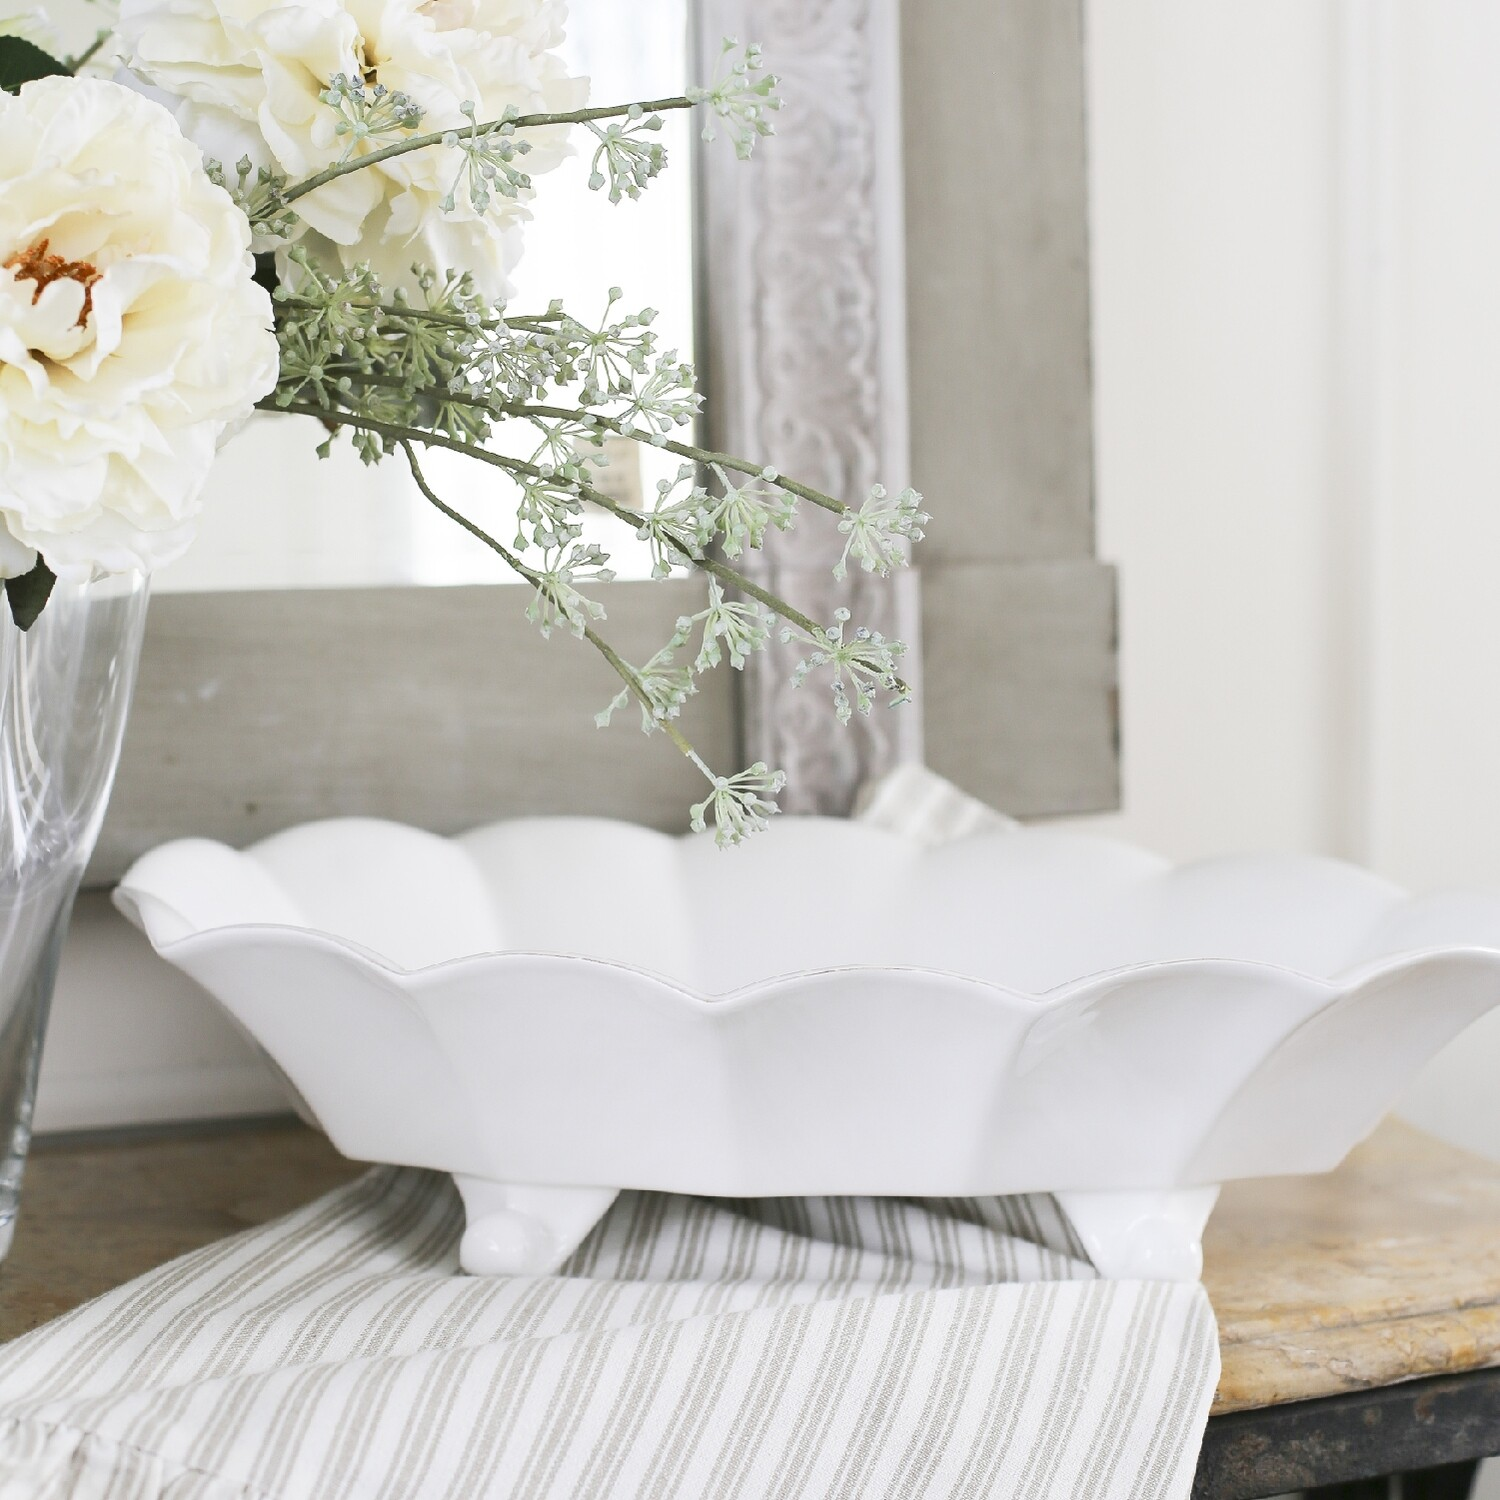 TRS Footed Serving Bowl Chartes